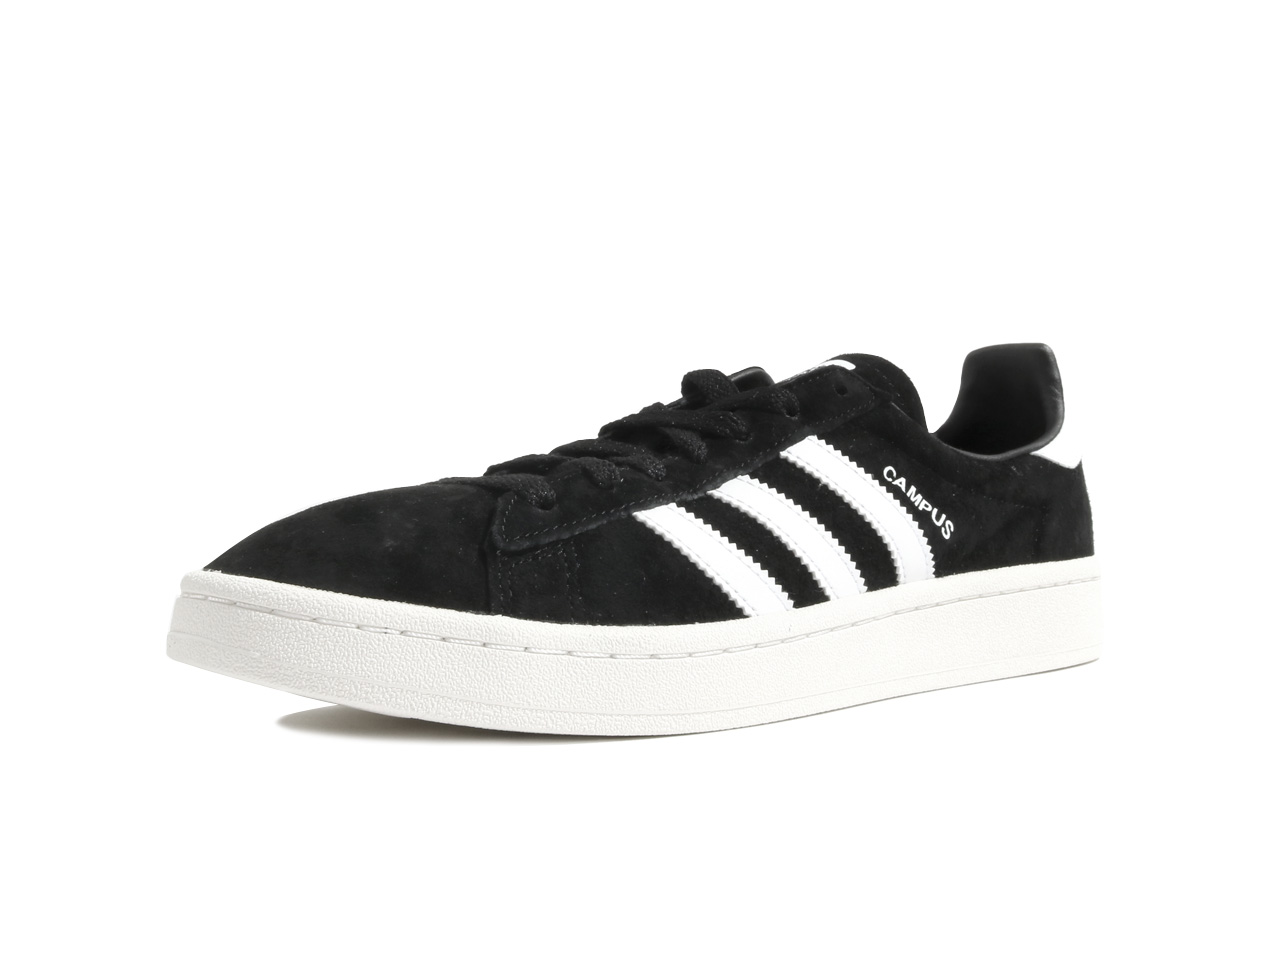 adidas_originals_campus_bz0084